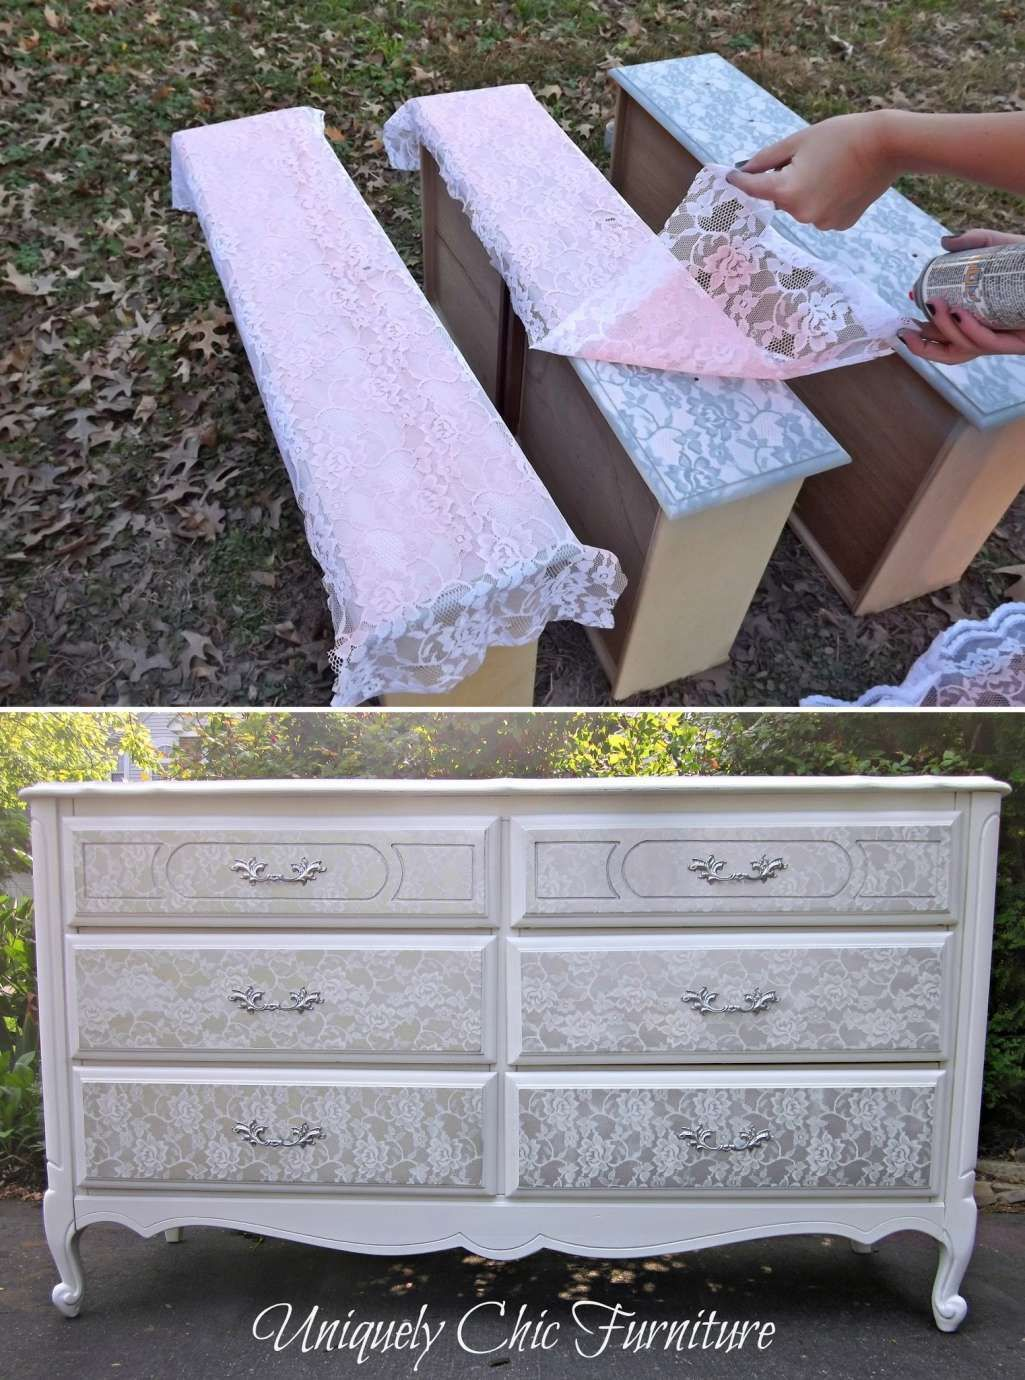 Use Lace As A Stencil To Dress Up A Dresser That Needs Repainting. (See